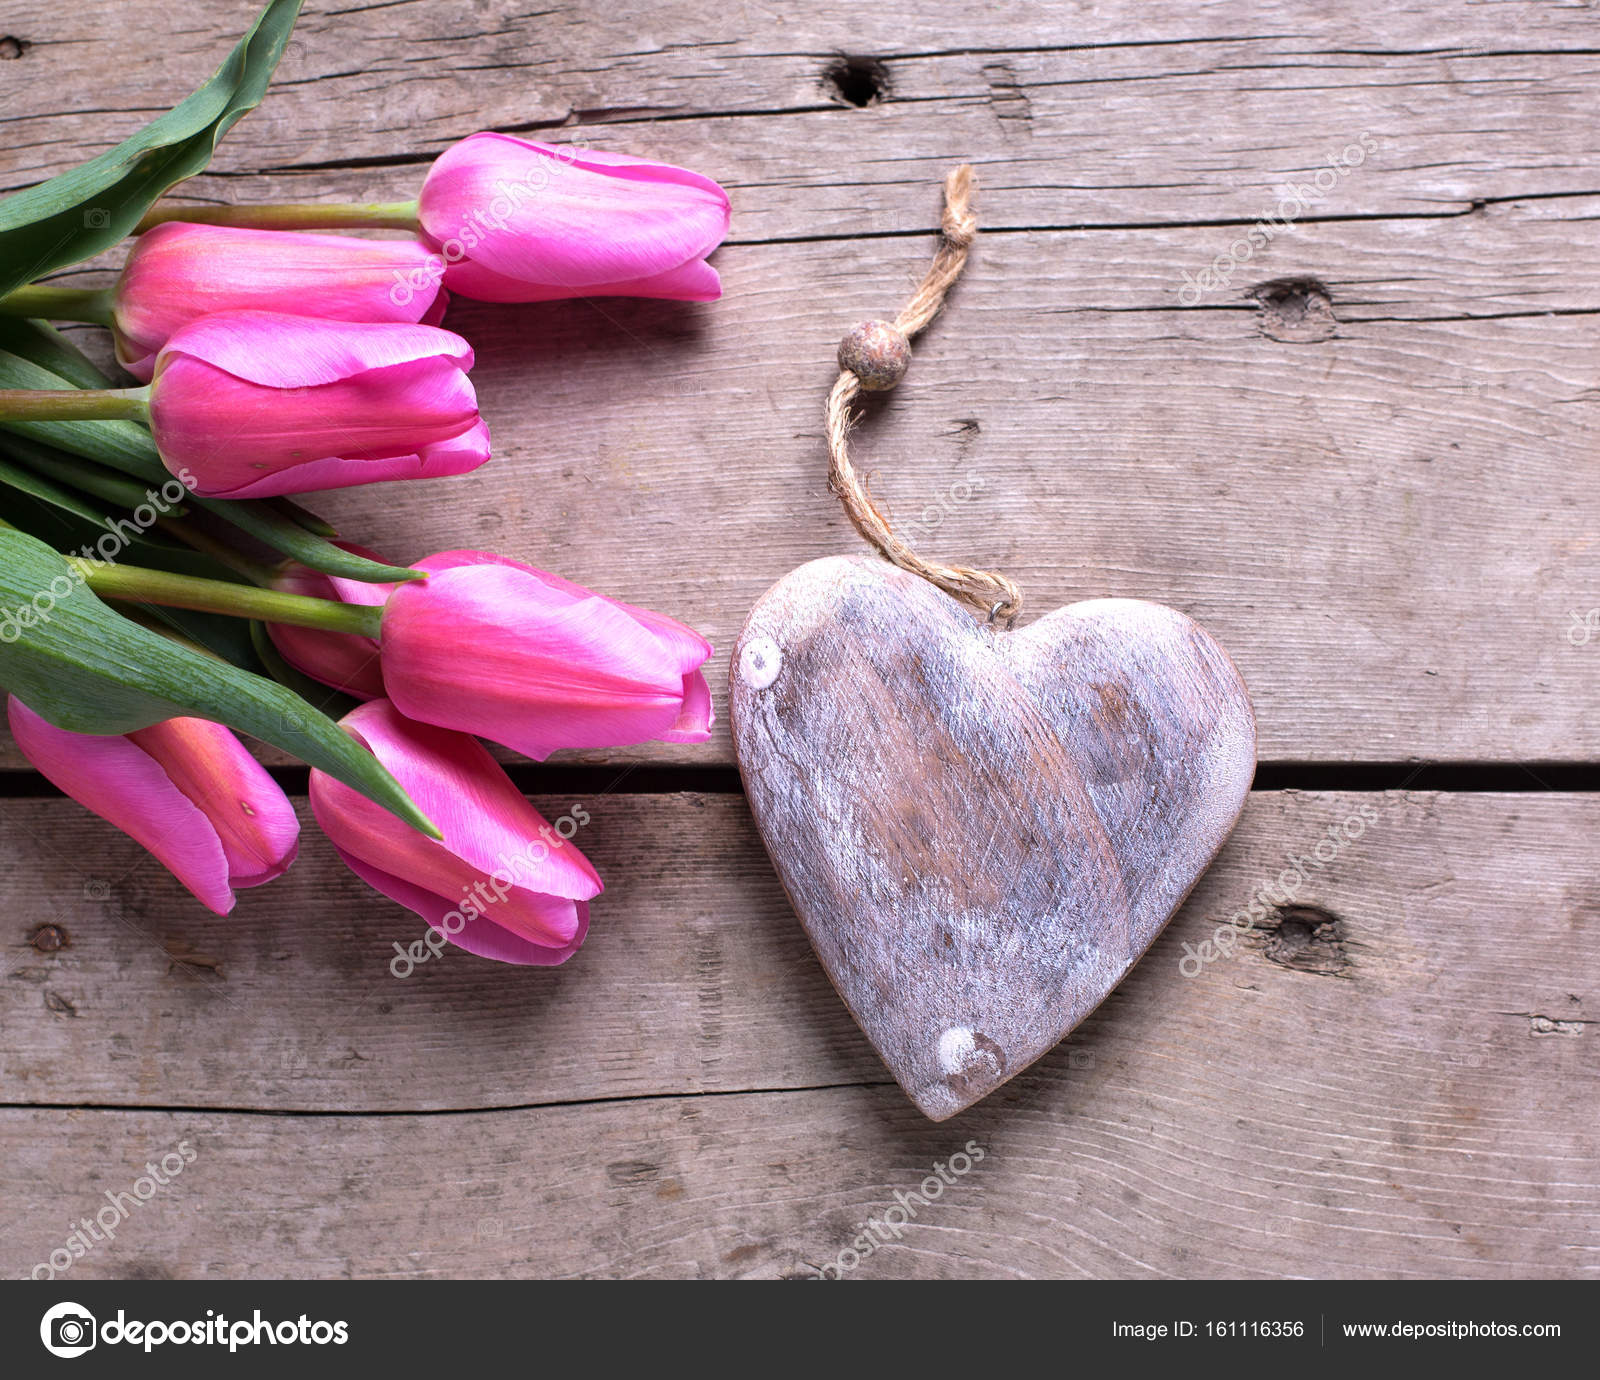 Bright Pink Tulips And Decorative Rustic Heart On Wooden Background Selective Focus Place For Text Photo By Daffodil